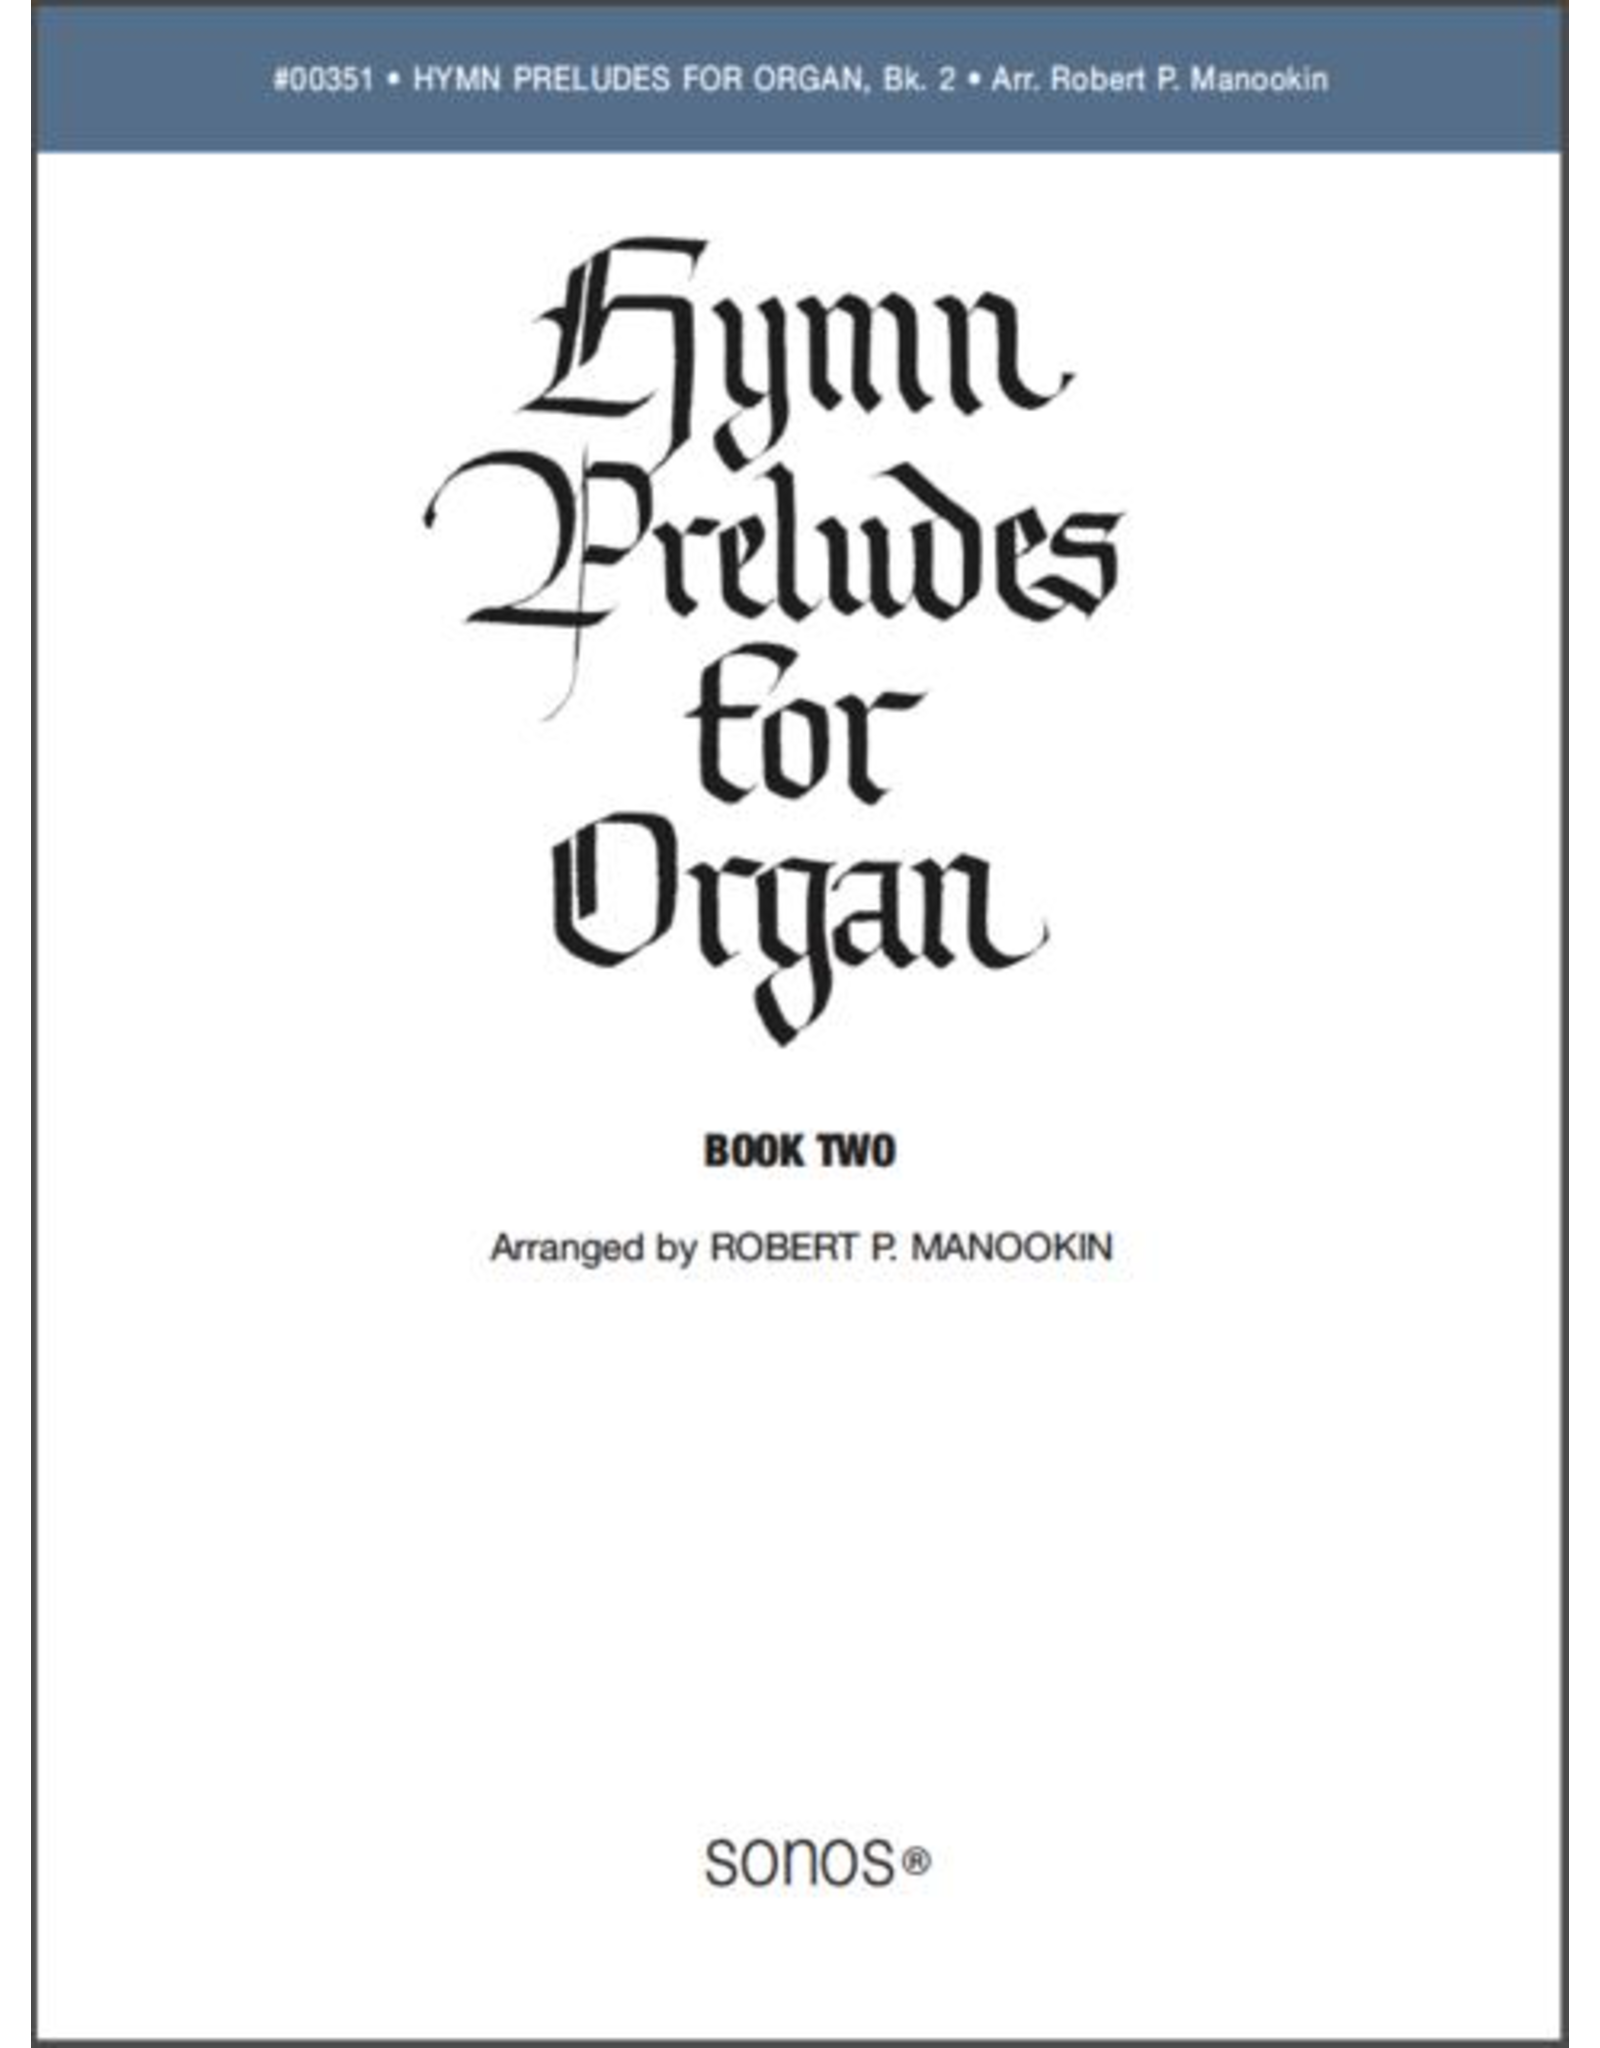 Jackman Music Hymn Preludes for Organ Book 2 arr. Robert P. Manookin